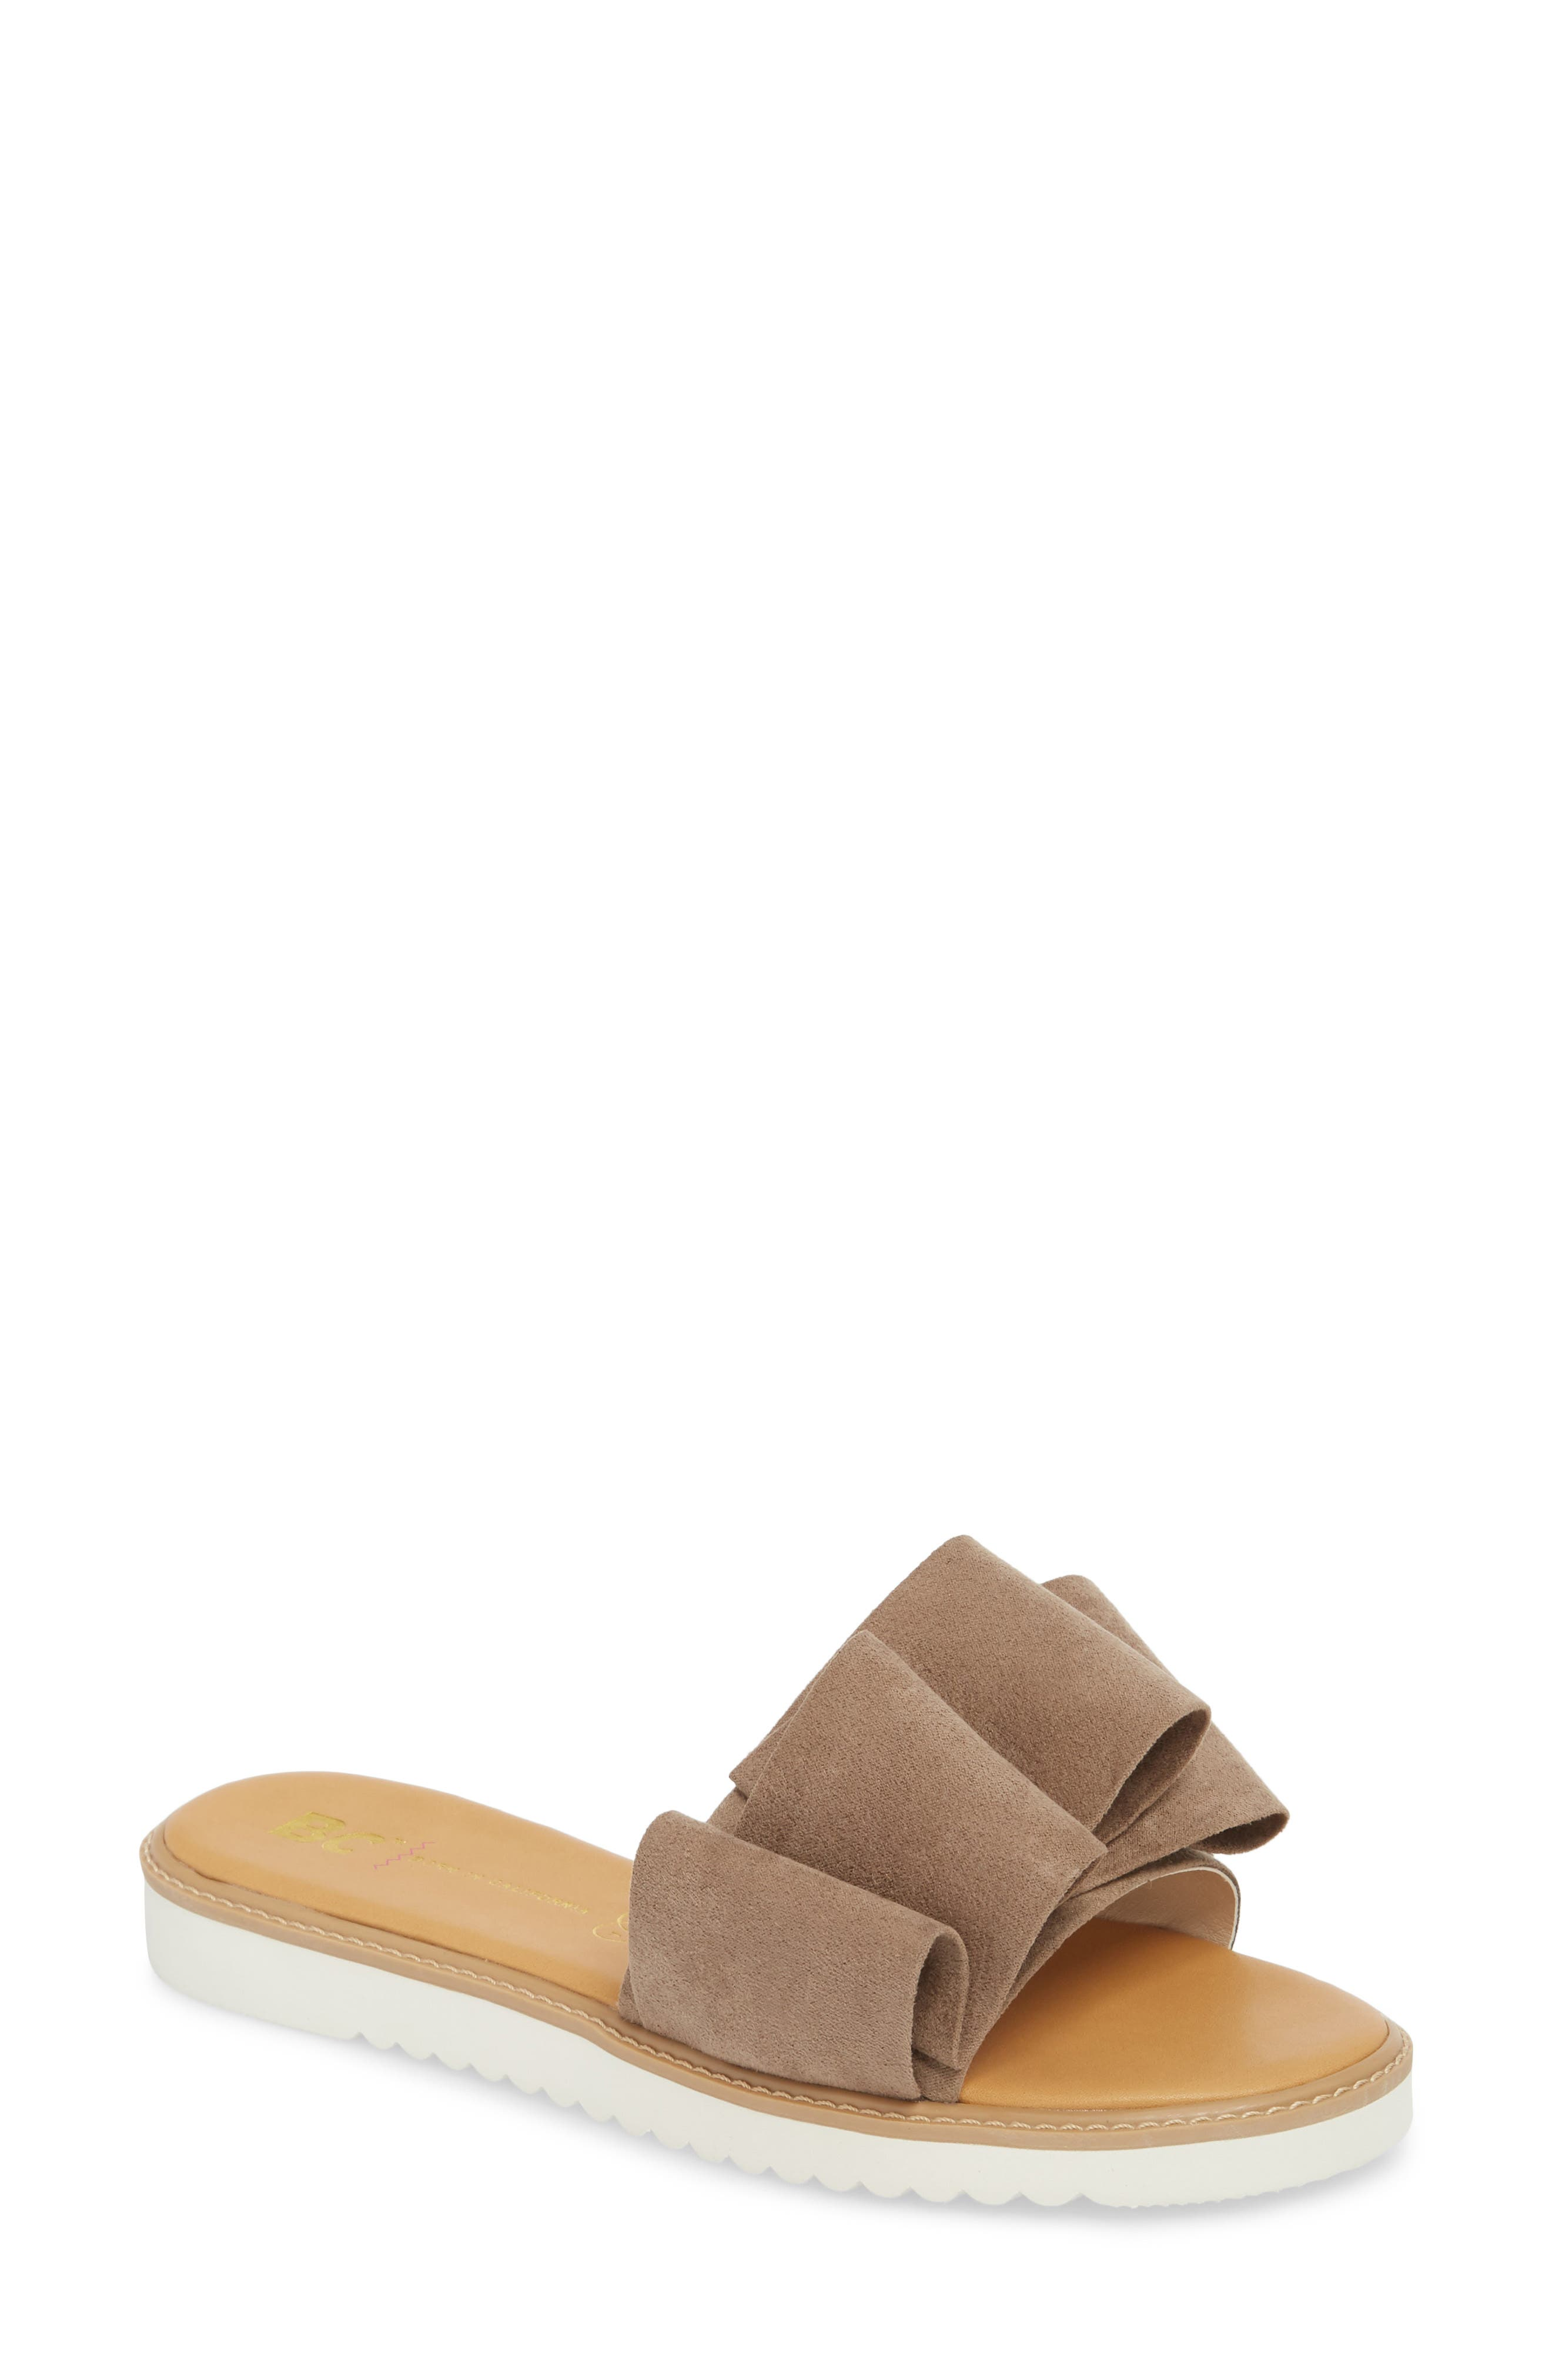 Fun for All Ages Pleated Sandal,                             Main thumbnail 1, color,                             TAUPE SUEDE